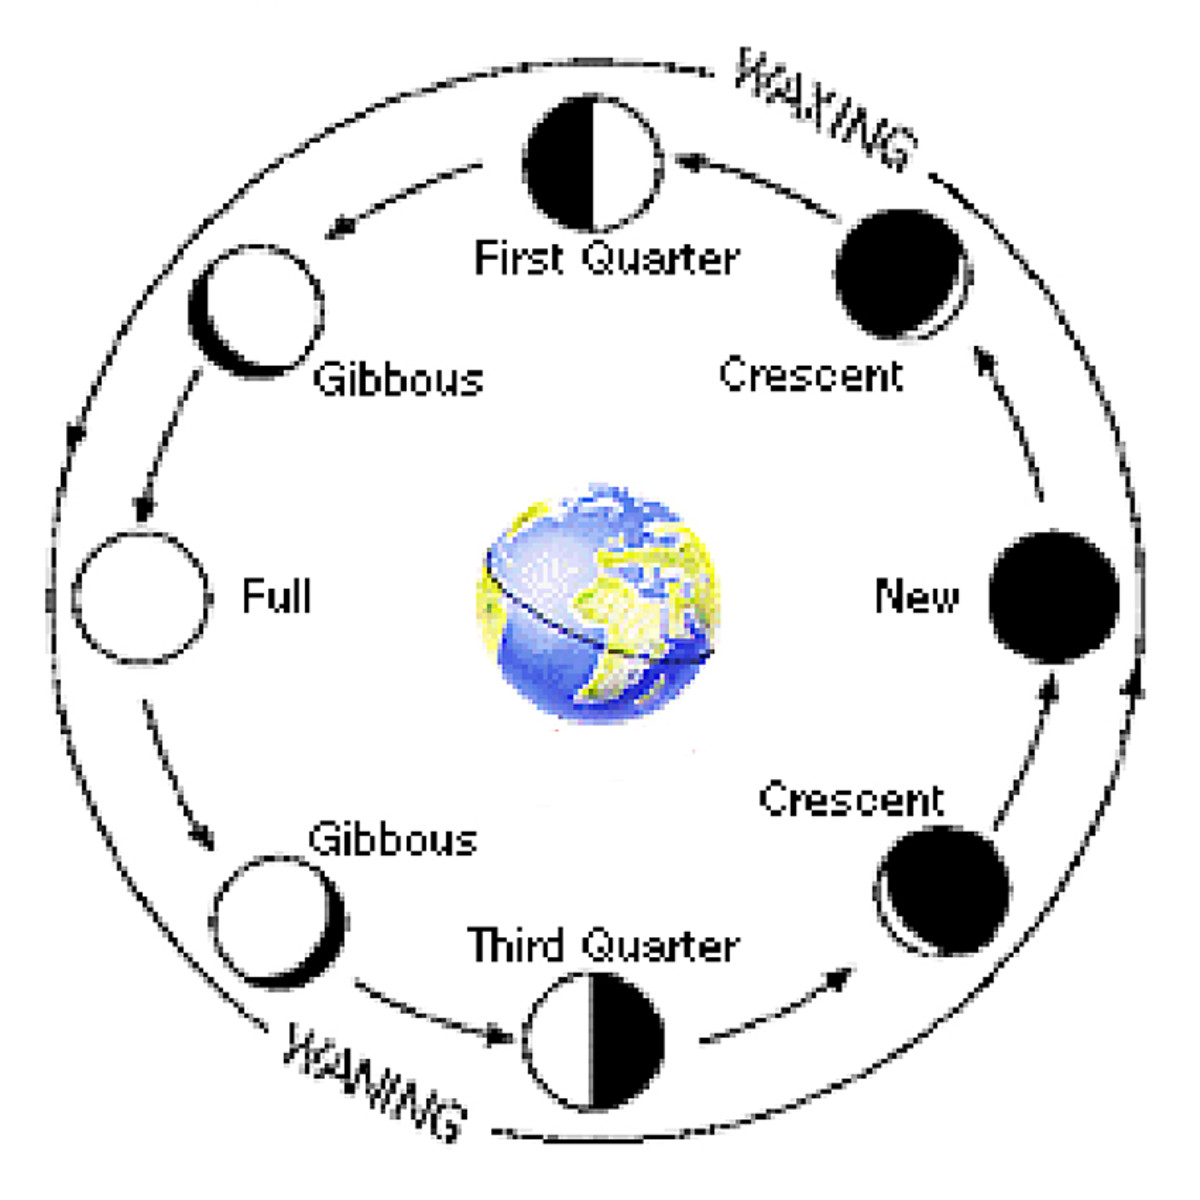 This diagram shows the phases of the Moon as it rotates counter-clockwise around the Earth, beginning with the New Moon when the Moon is between the Sun and Earth